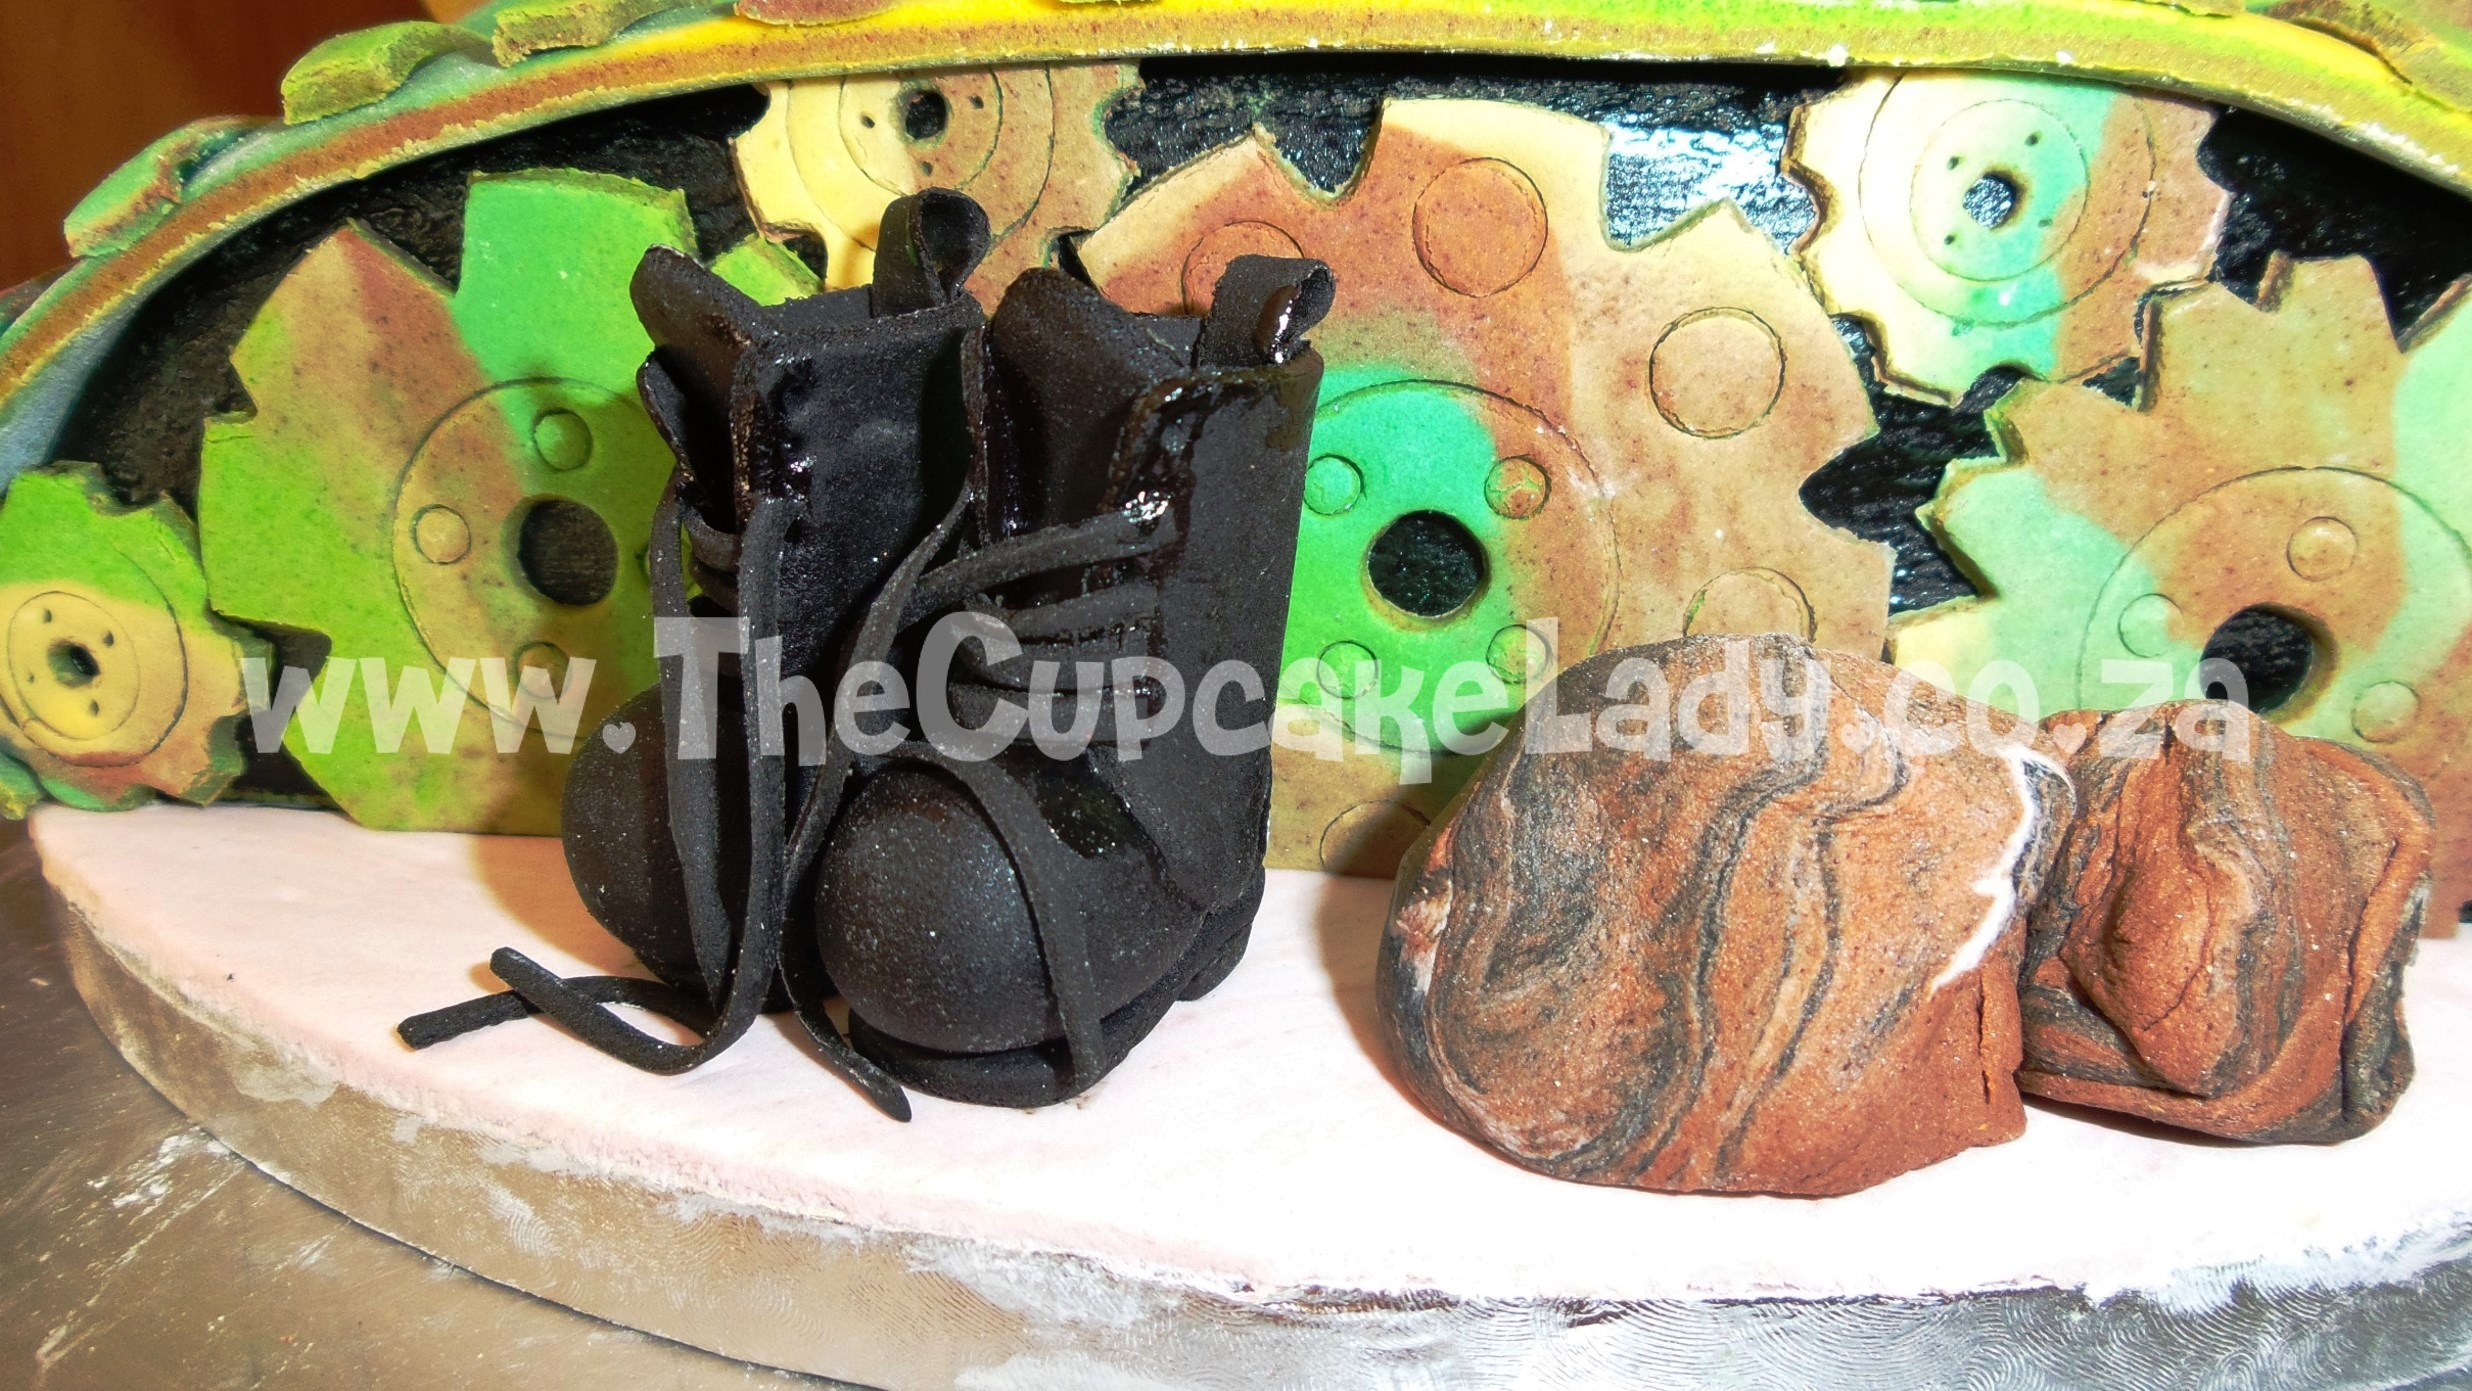 Custom made, sugar paste boots and rocks, sugar paste soldier tank driver wearing a beret, tank cake, army cake, novelty cake, sculpted cake, green yellow brown colour scheme, camouflage